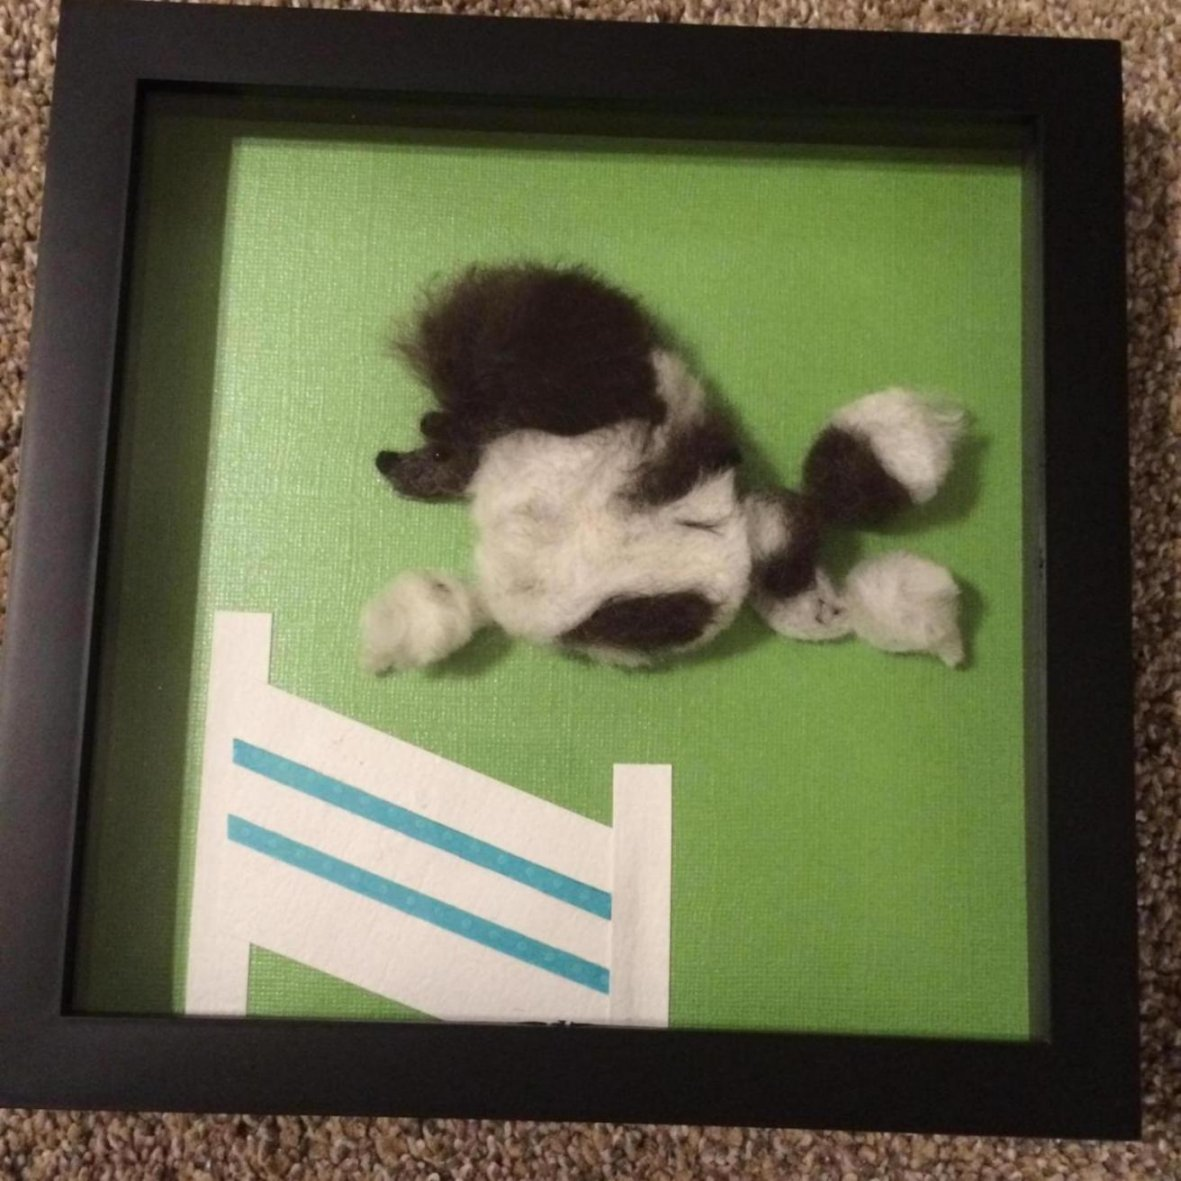 Custom felted poodle art (made with your own poodle hair)-ee26985d-73a1-4388-baa0-4a34c783a897_1556683337139.jpg